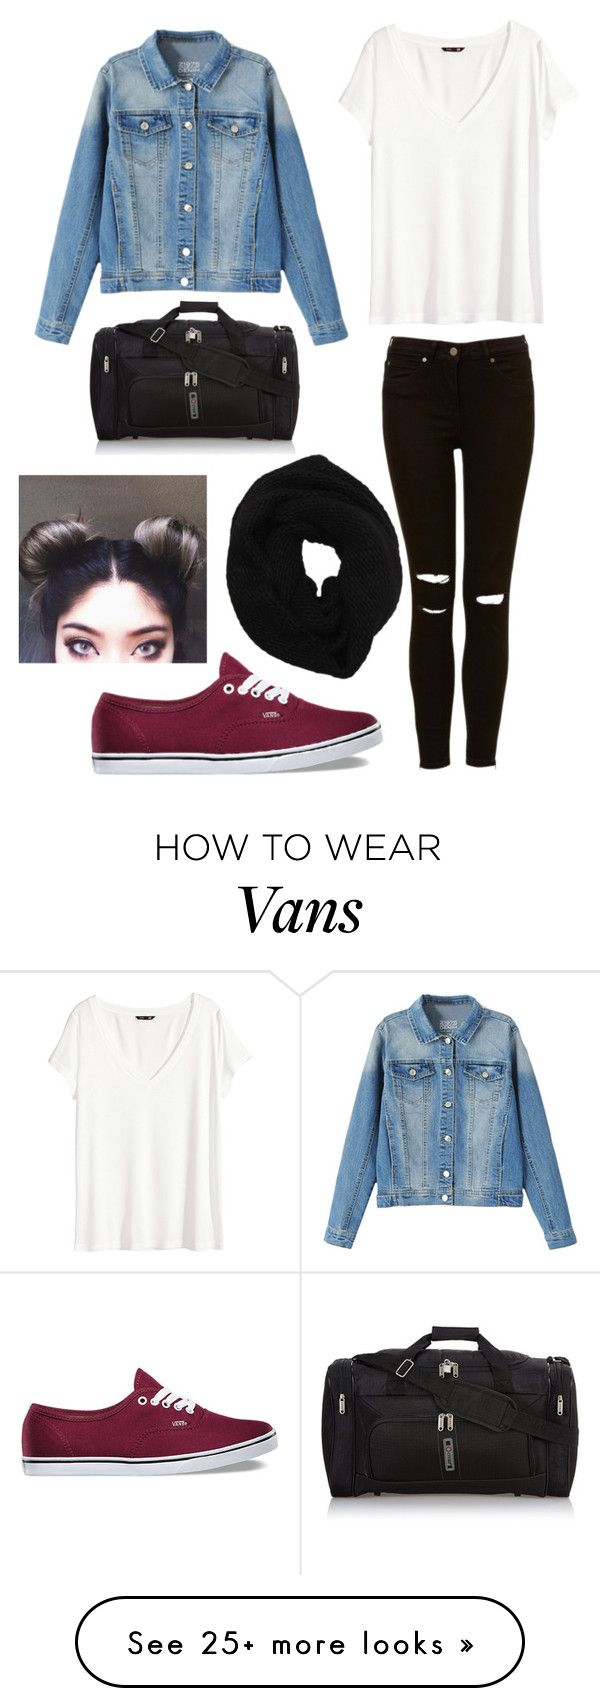 """""""Why are space buns so cute?????"""" by bunnytail14 on Polyvore featuring H&M, Vans and Wyatt"""